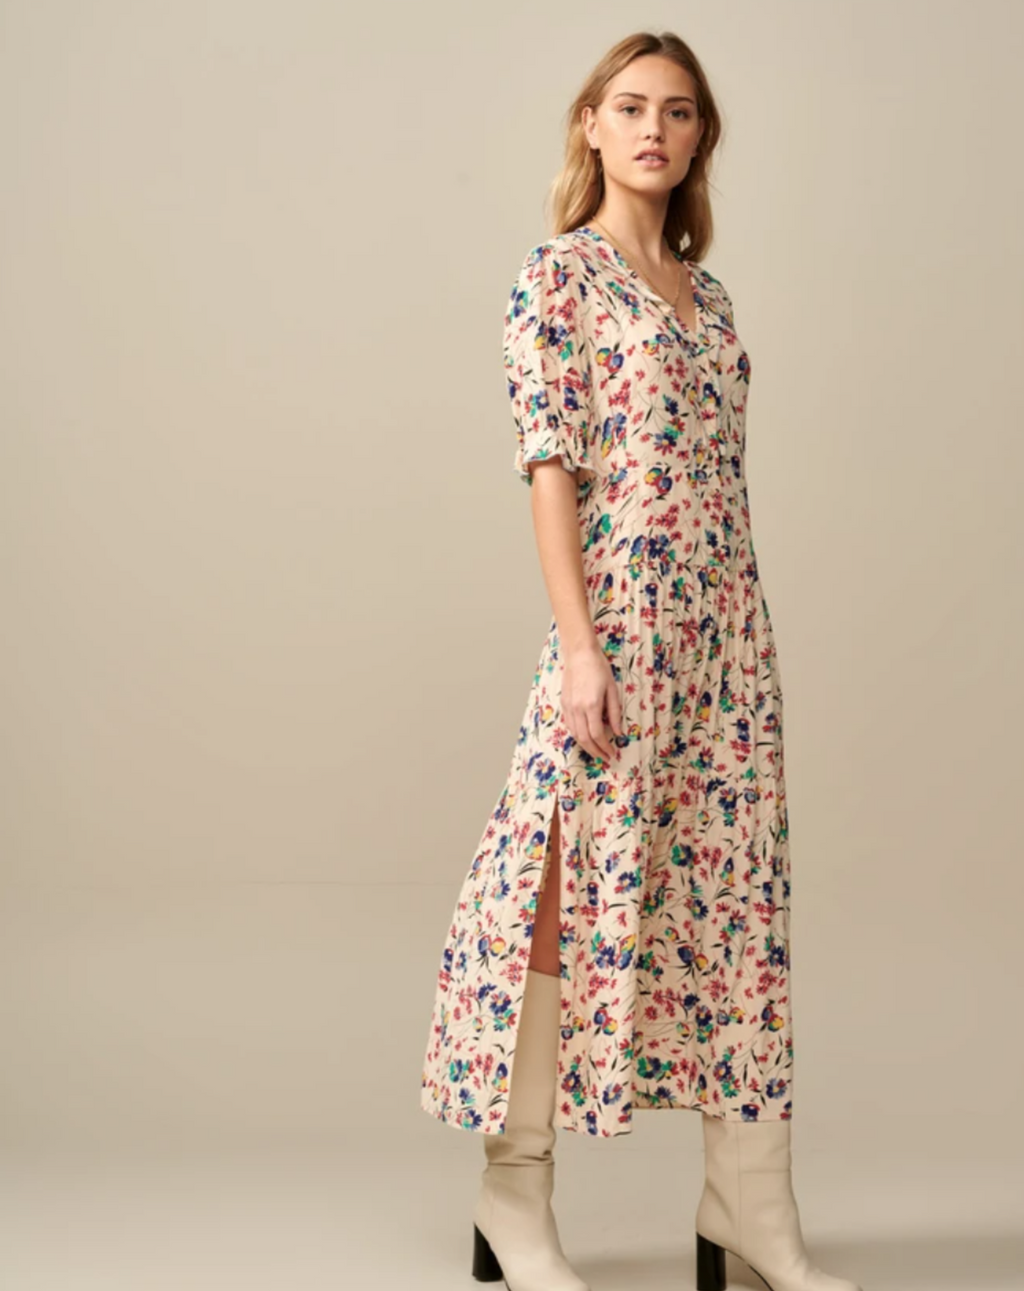 Bright with Bohemian vibes. A long dress with a colorful floral pattern that can take you all the way through summer! Elegant V neck with discreet frills, puffed elbow length sleeves and cinched waist finished with a paneled skirt that will graze at your ankles. Wear it with a pair of strappy sandals and a wicker basket and voilà!- 100% Viscose.